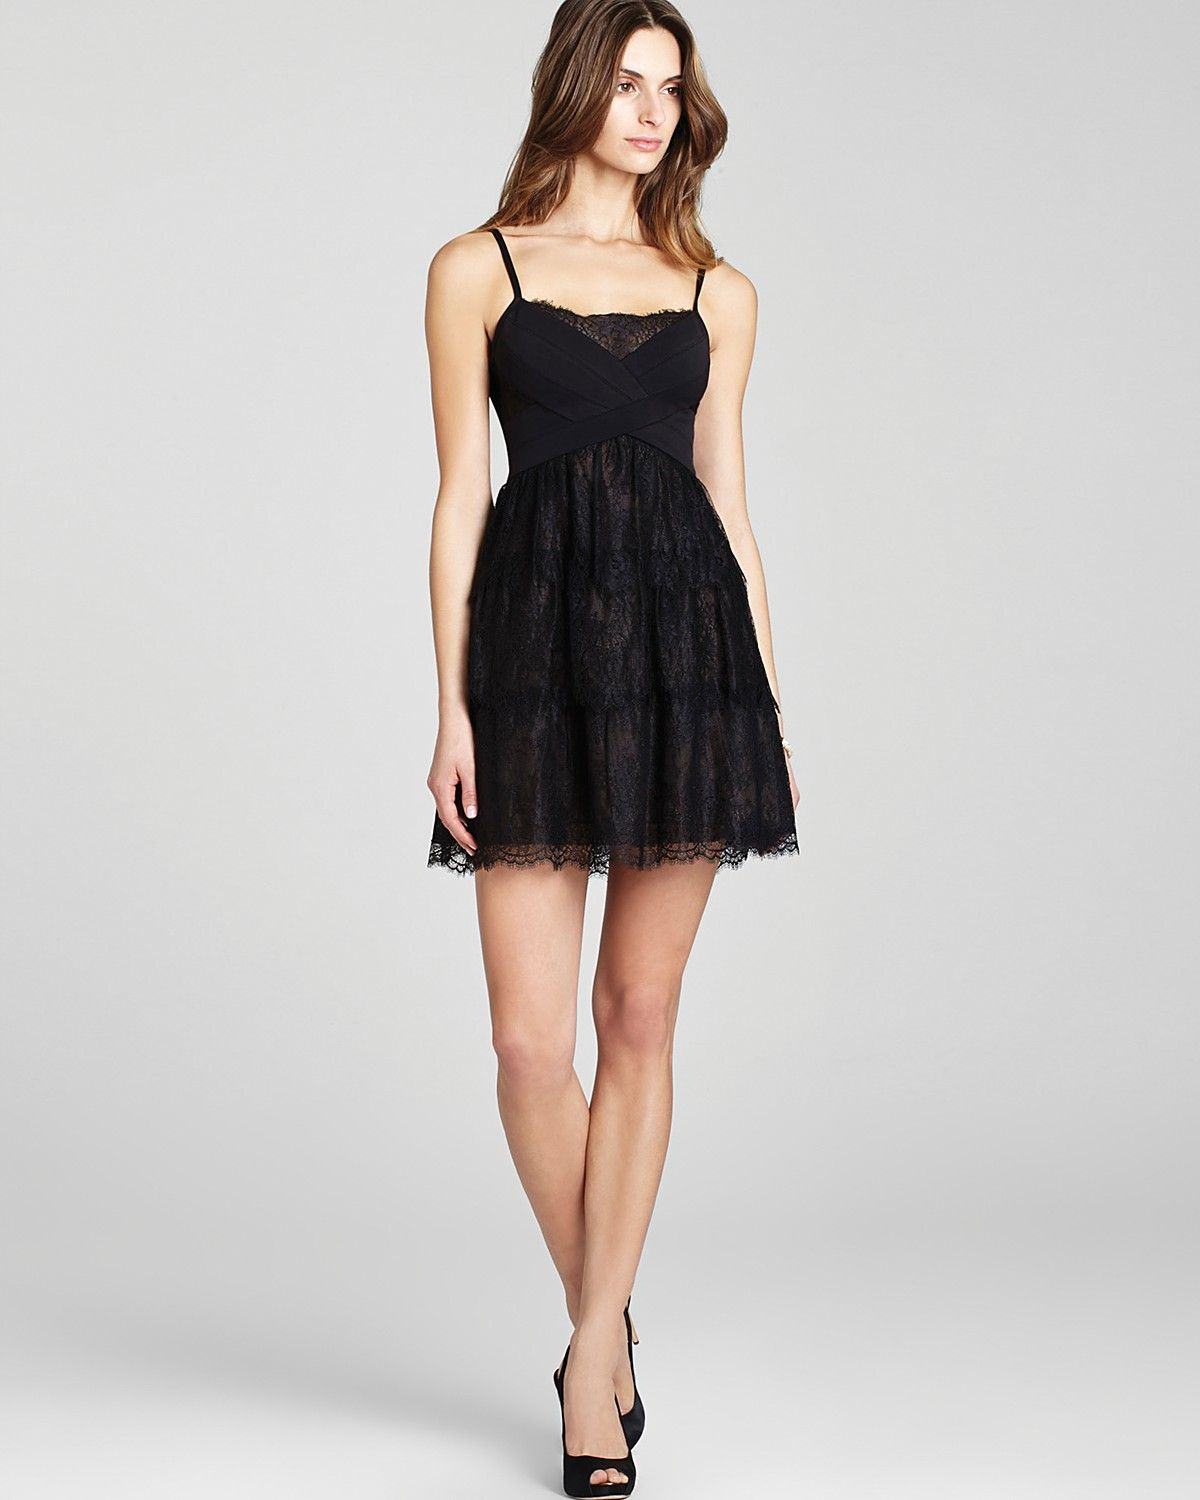 BCBGMAXAZRIA Dress - Sleeveless Lace | Bloomingdales